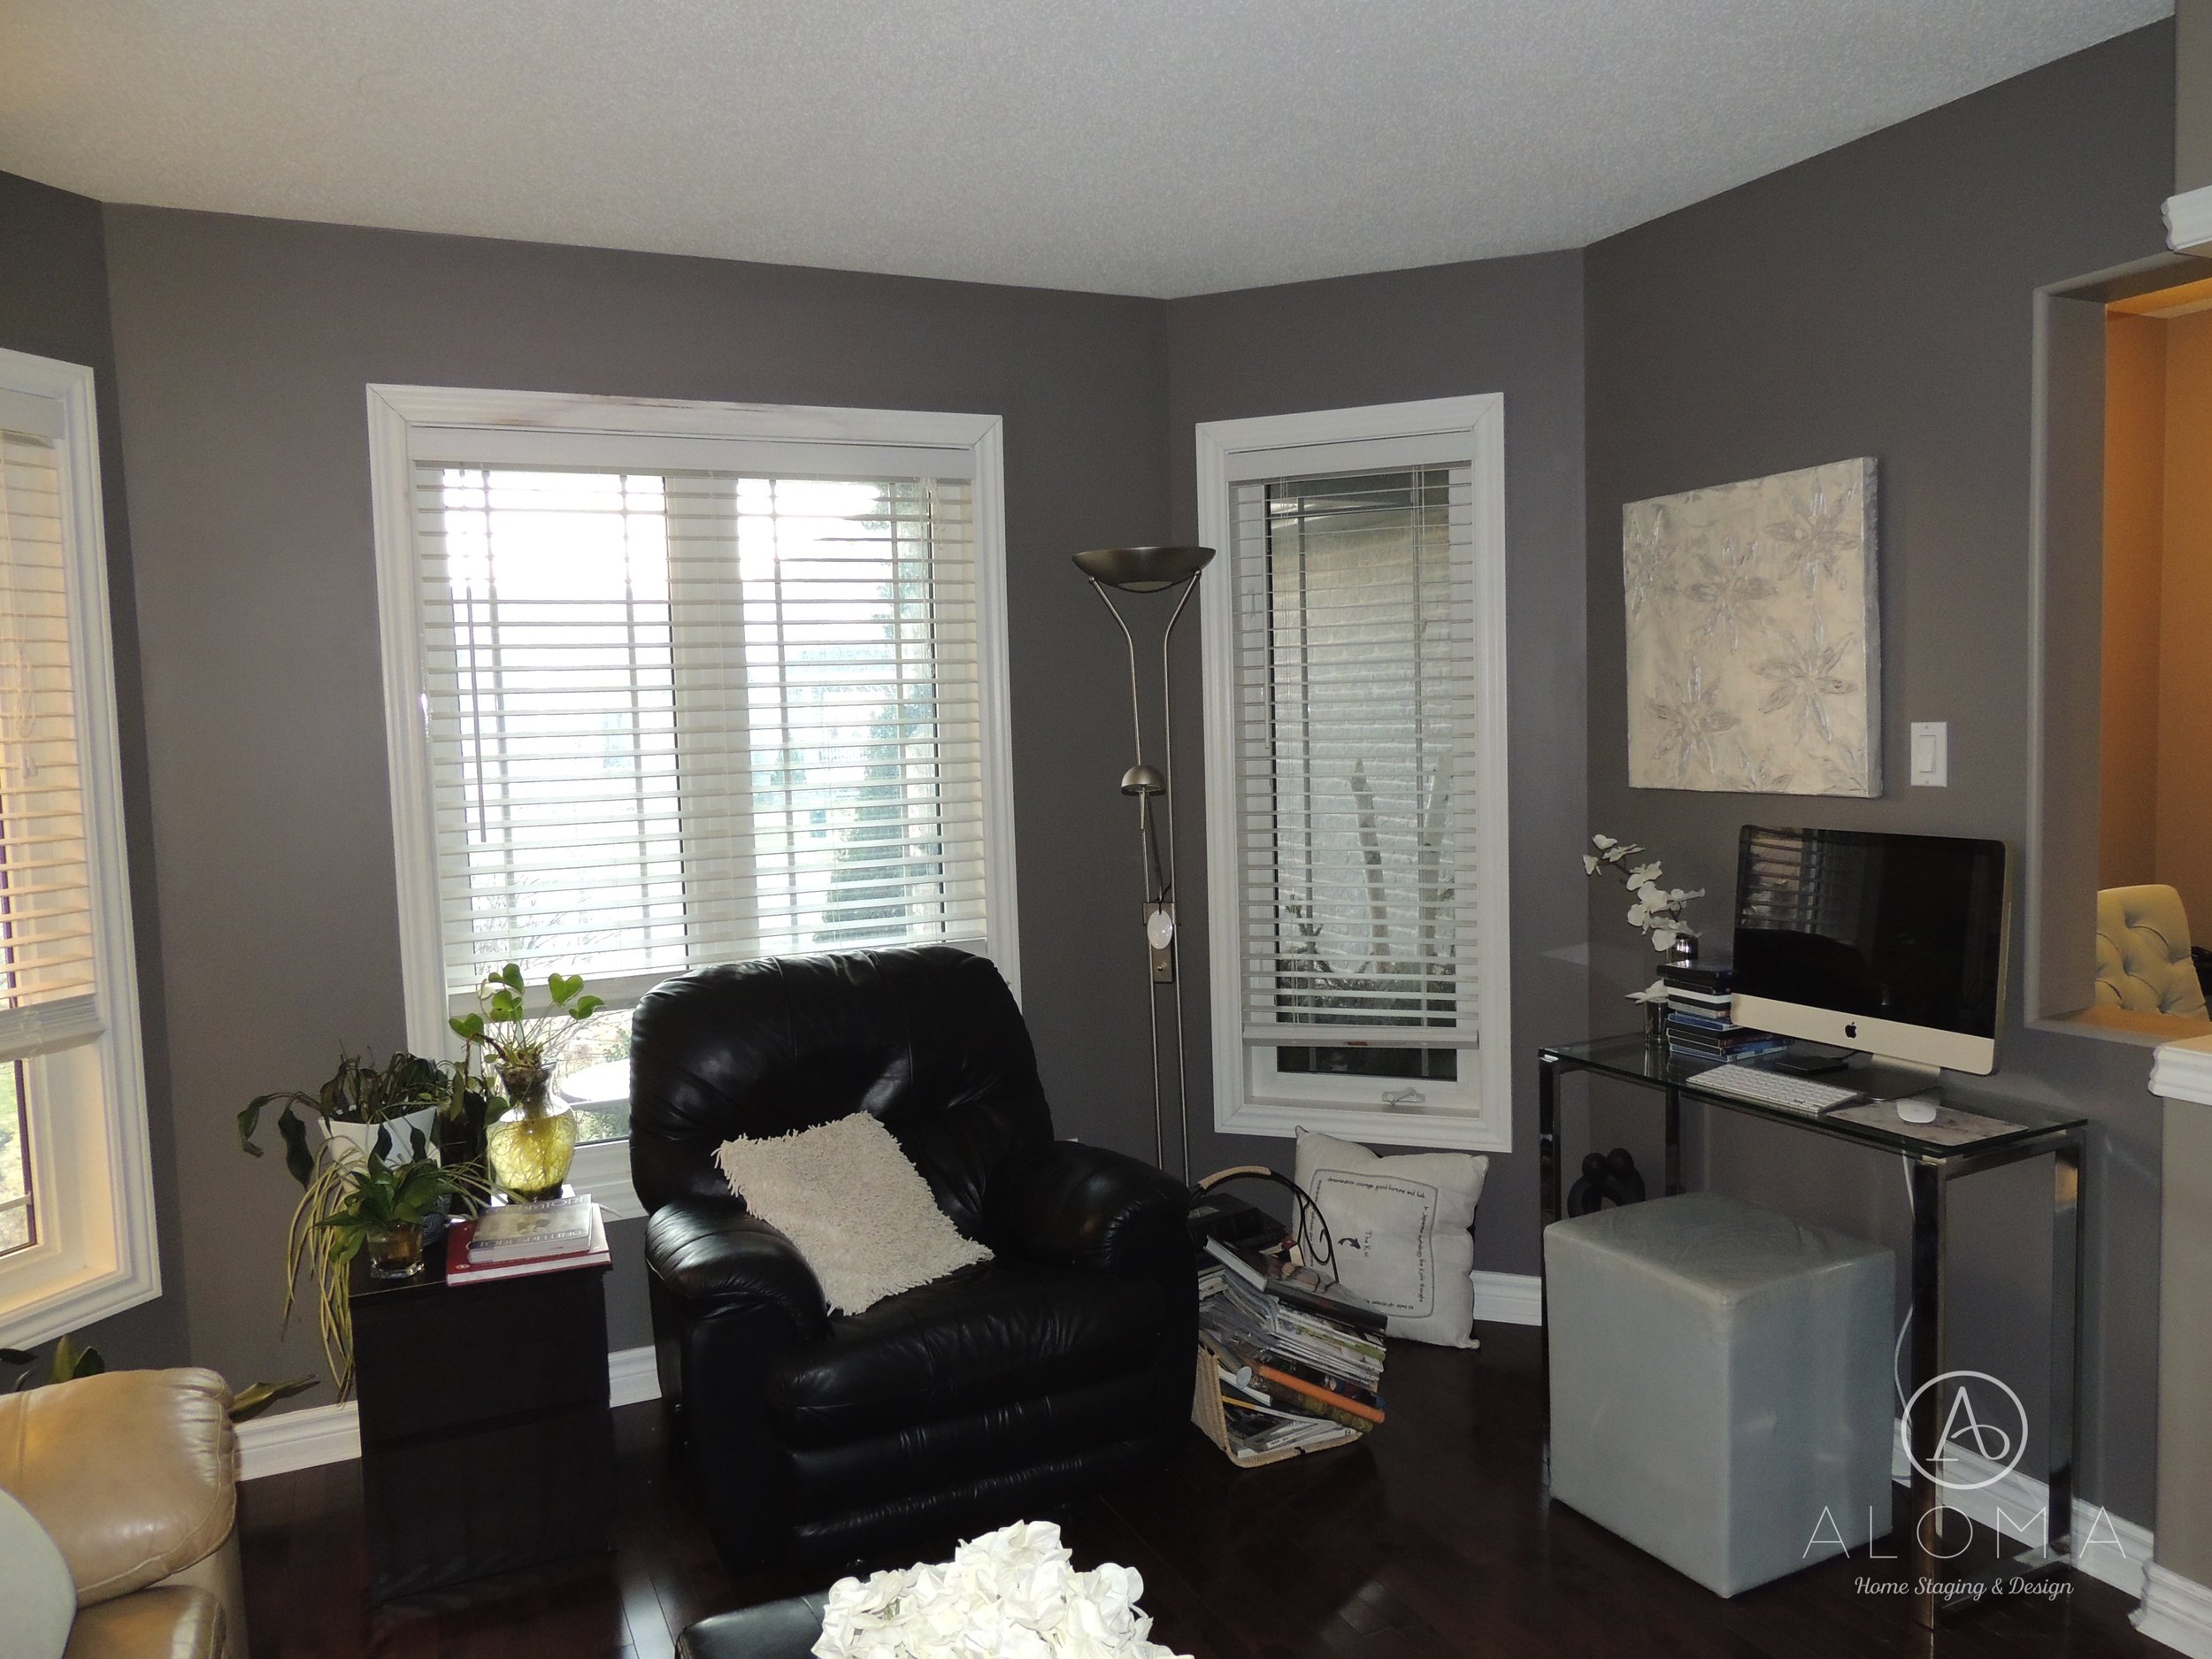 Before-Office-ALOMA Home Staging & Design